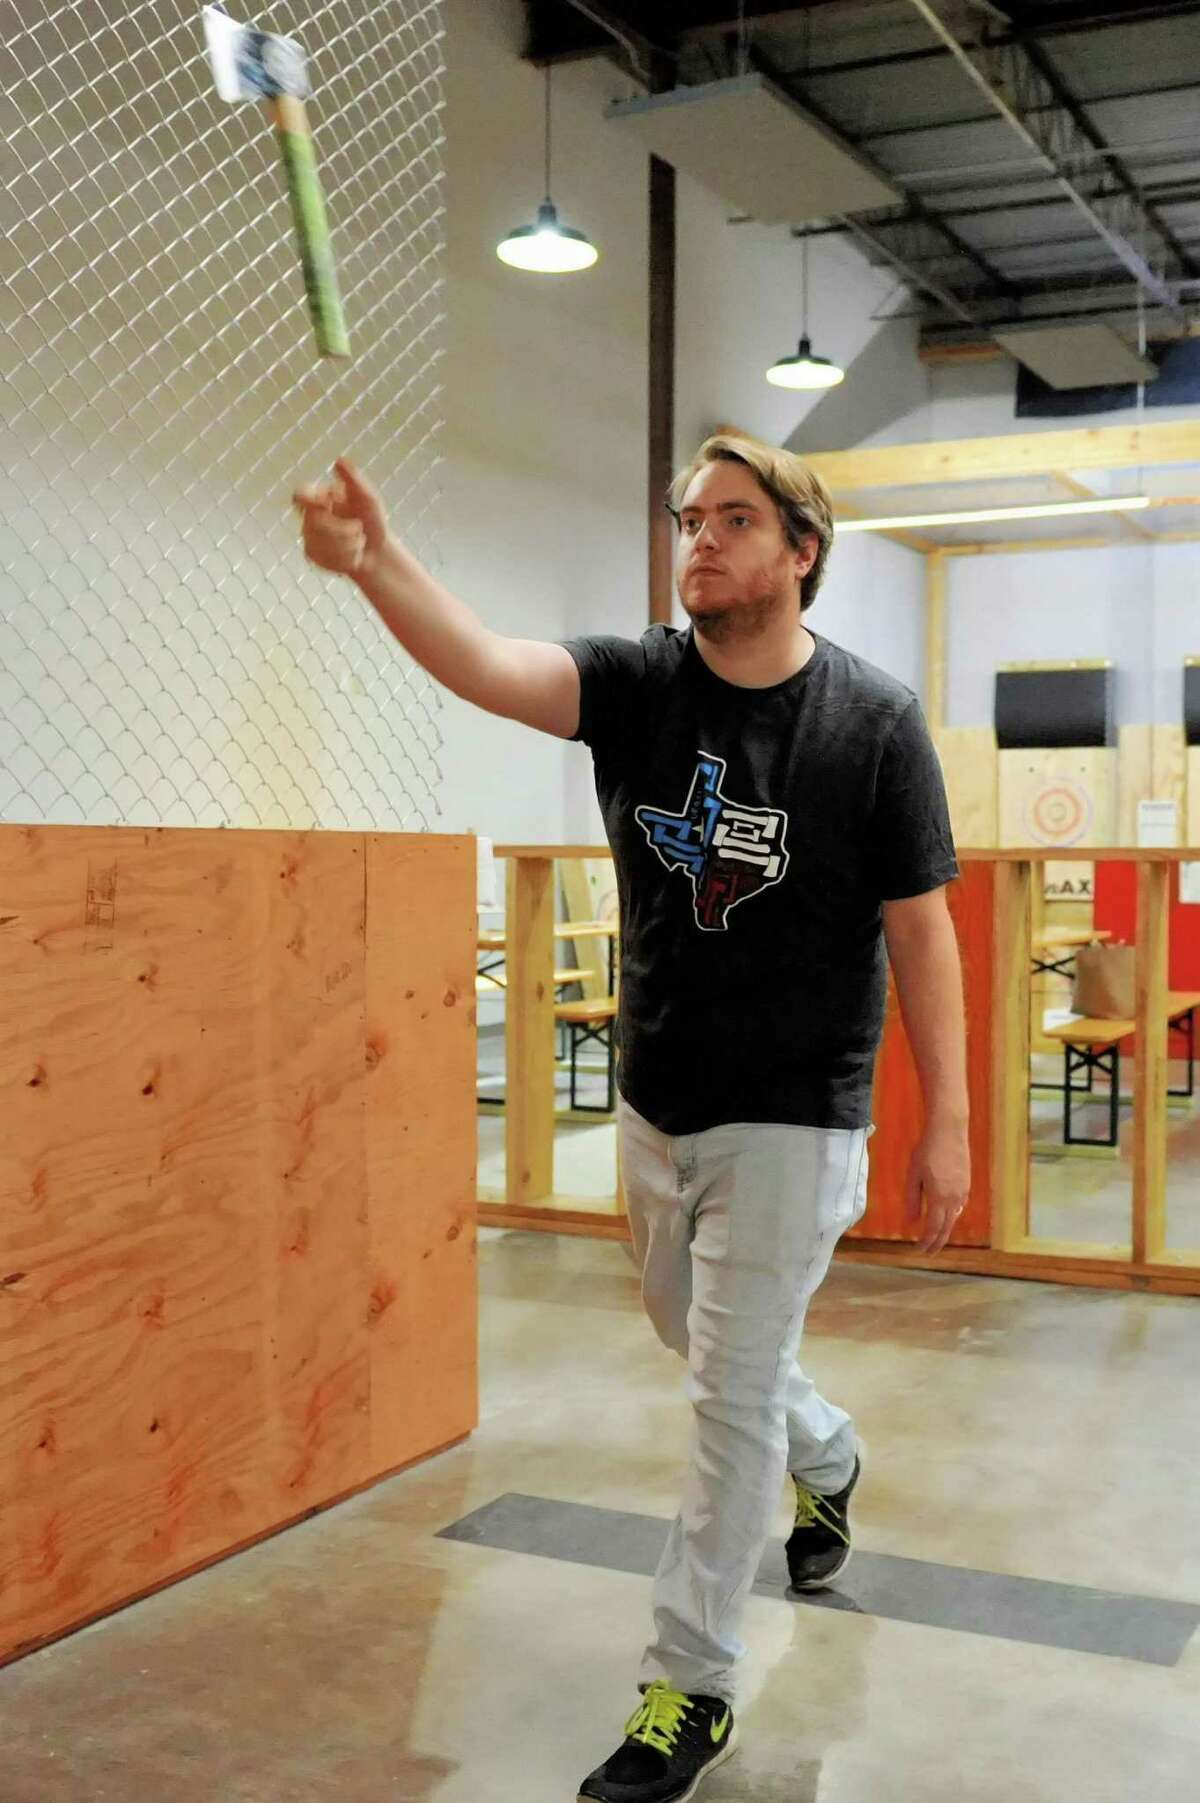 Kyle Hough tosses an axe at a target at Urban Axes, Houston, TX on Saturday, January 4, 2020.